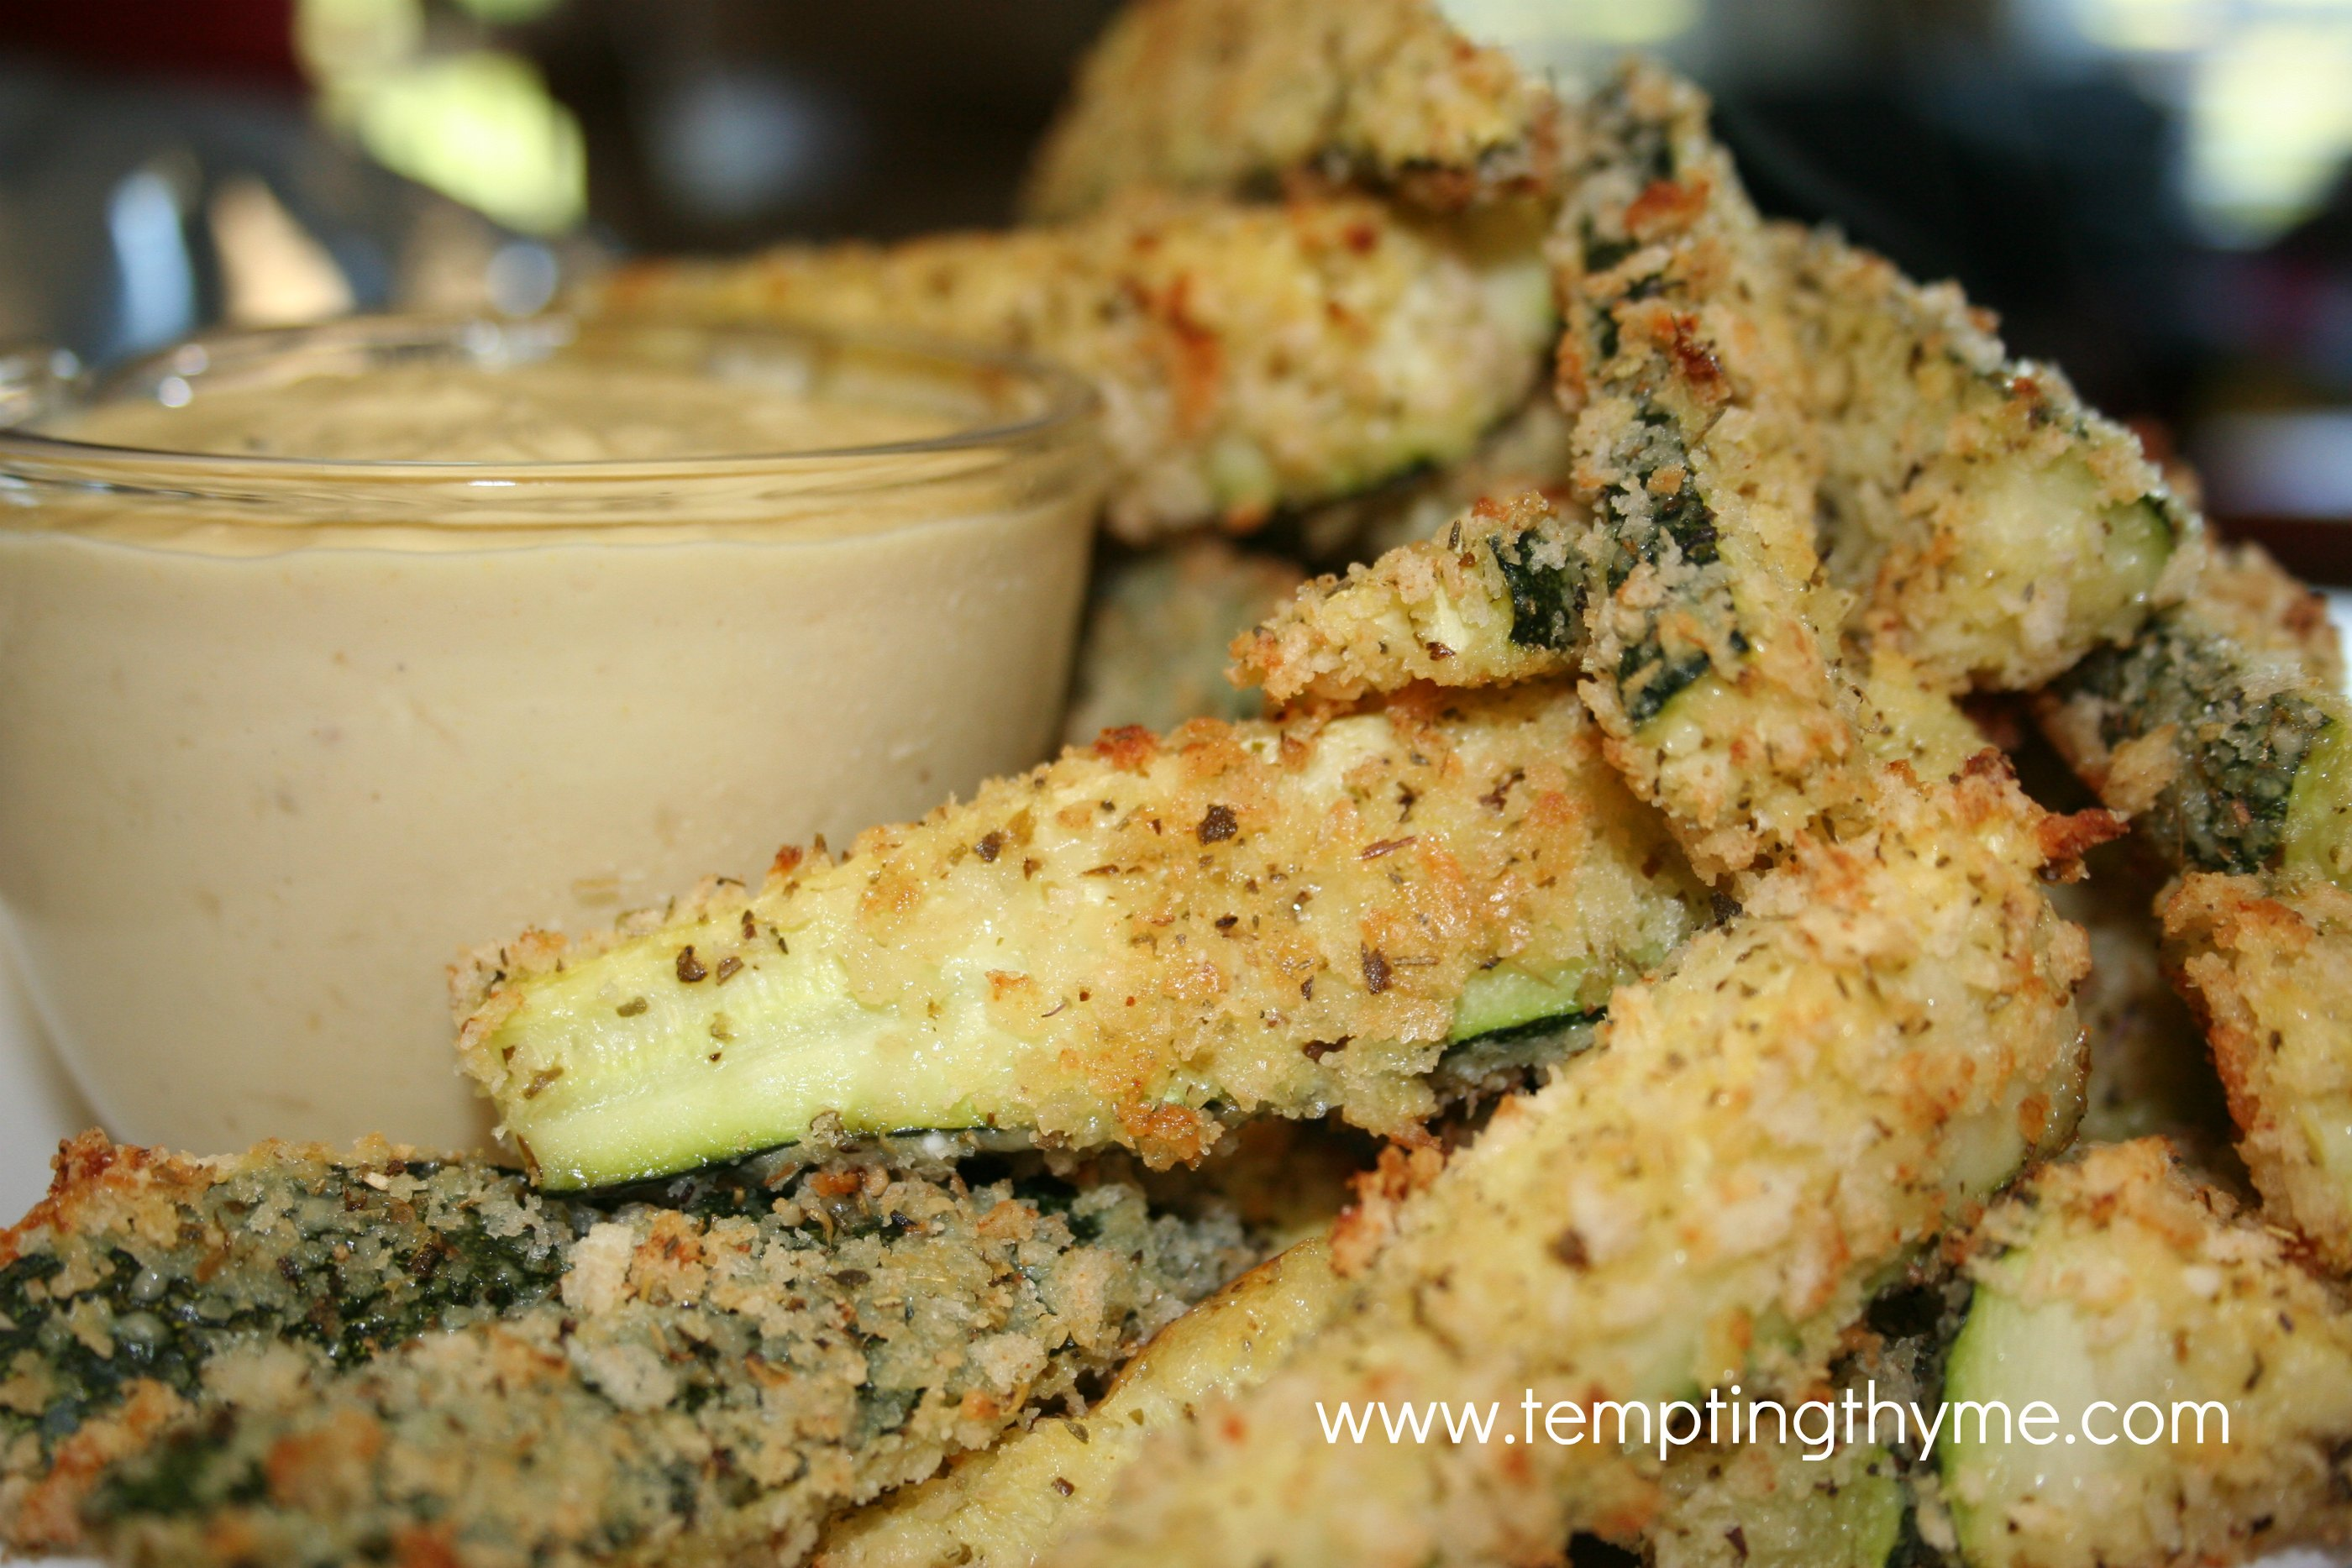 Zucchini Fries with Carmelized Onion Dip!